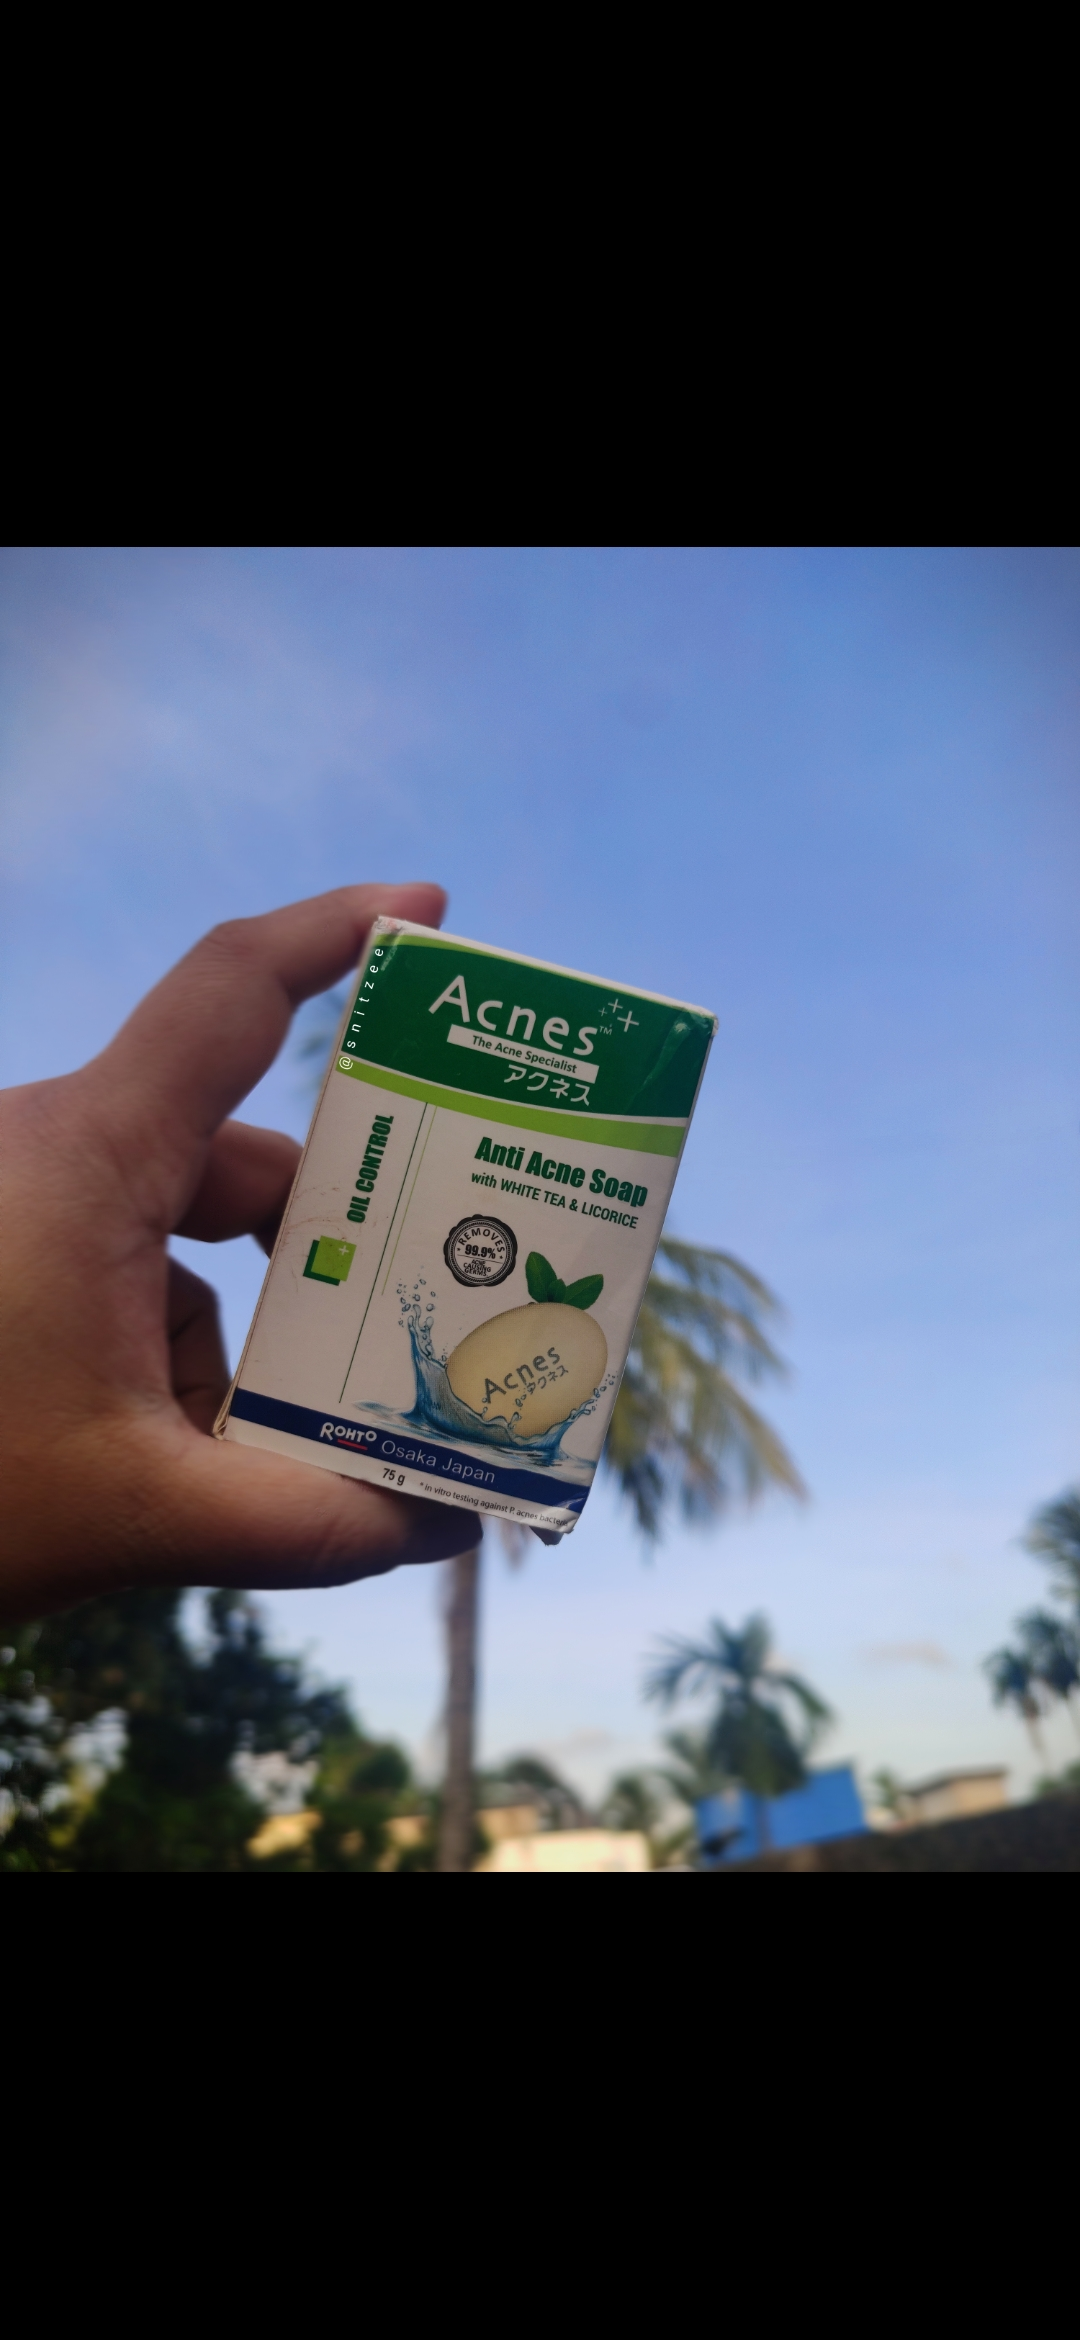 Acnes Oil Control Soap-Good for oily, acne skin-By snitzee